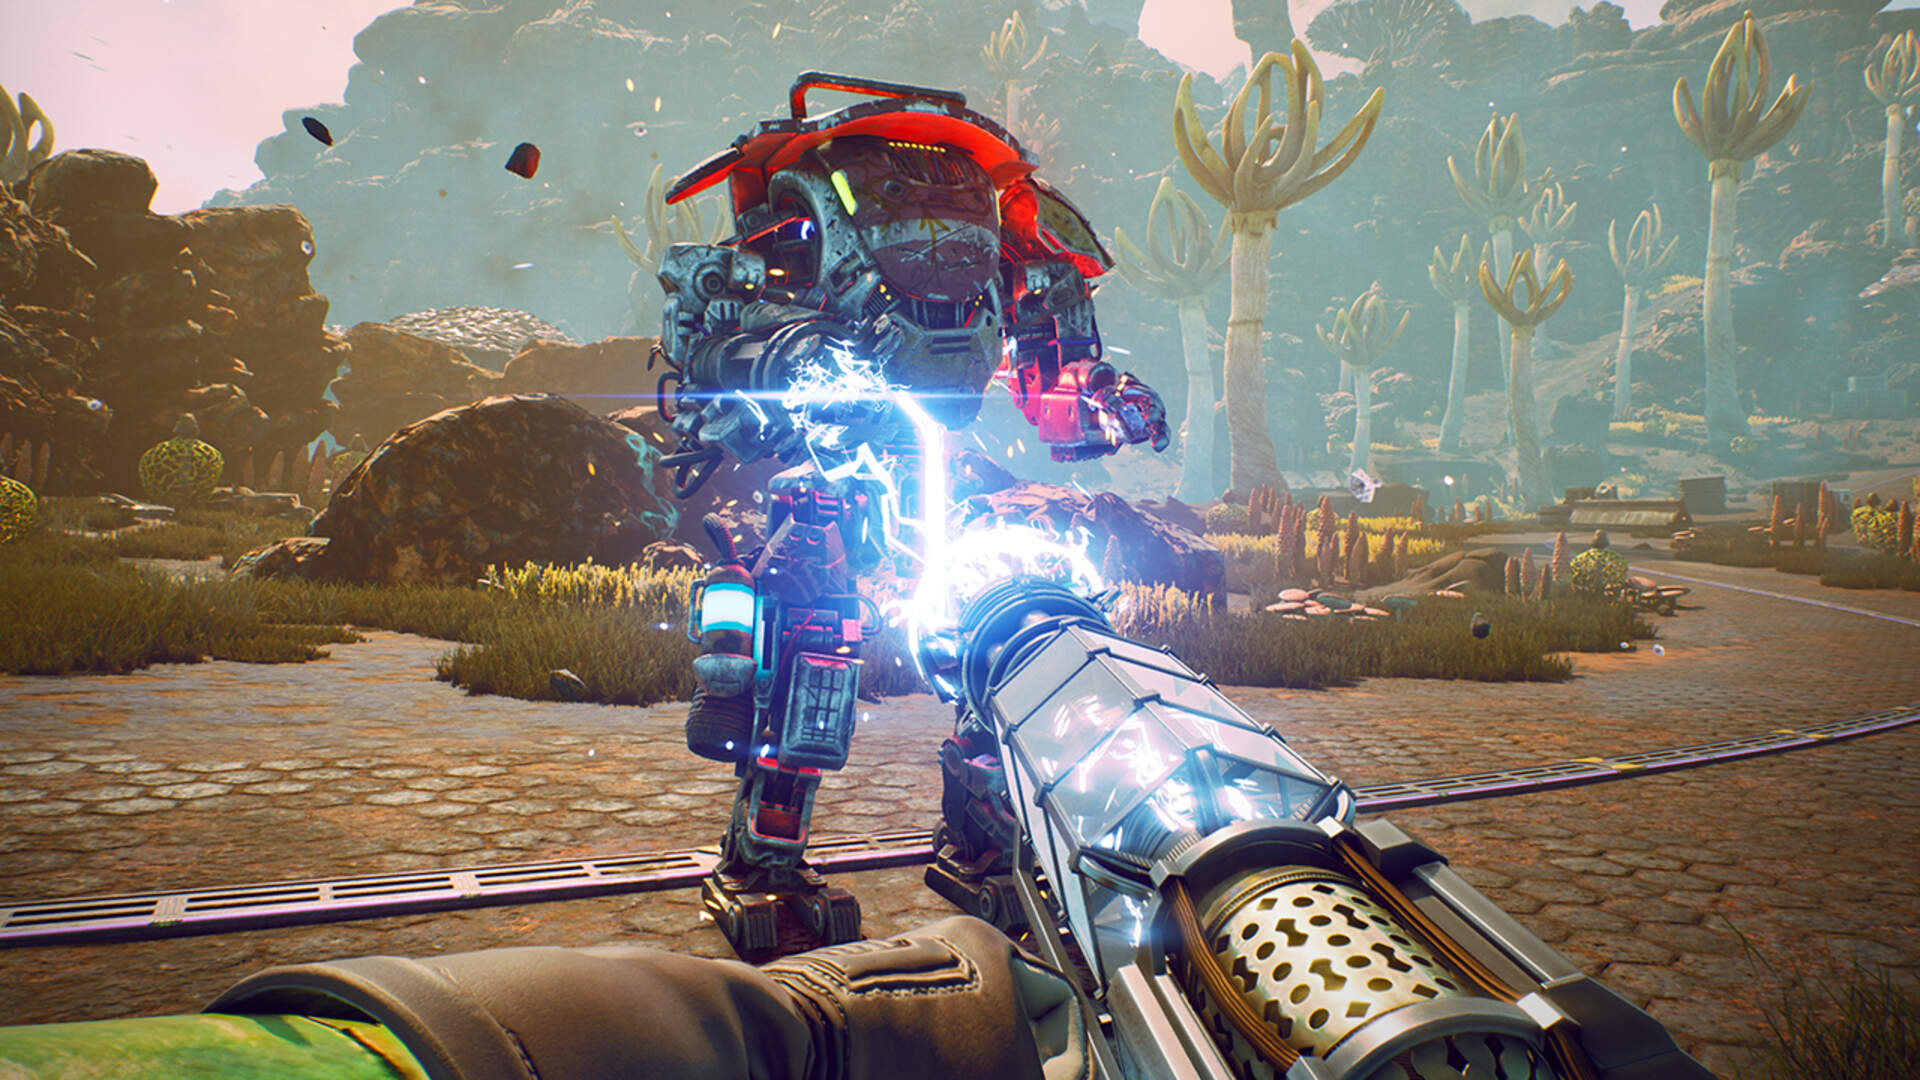 The Outer Worlds Perks - All the Best Perks to Purchase